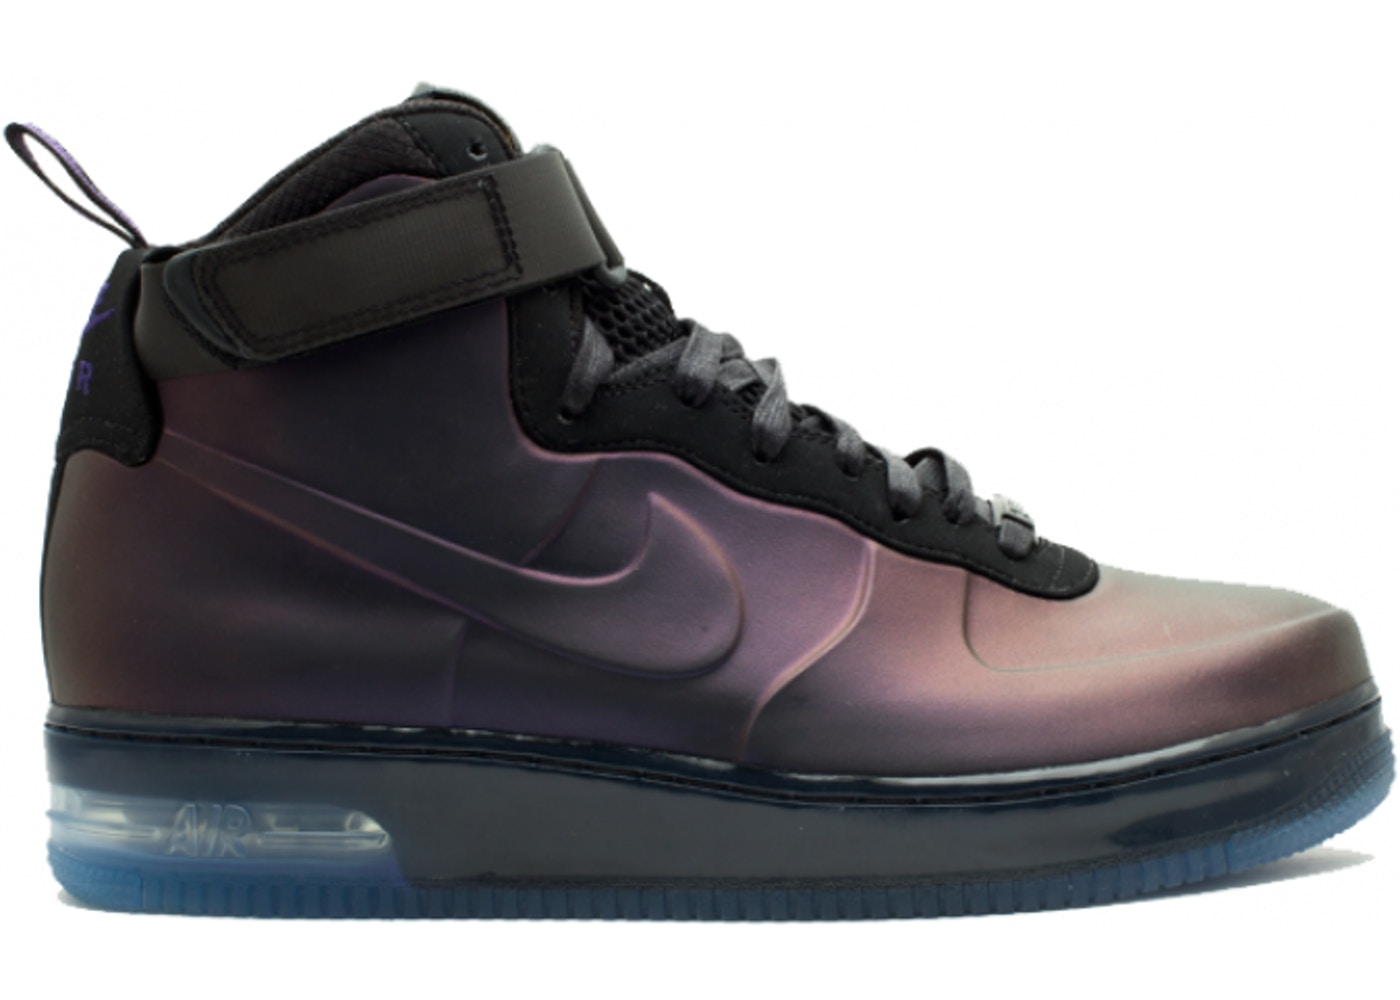 best sneakers db6a3 8eef6 Air Force 1 High Foamposite Eggplant - 415419-550